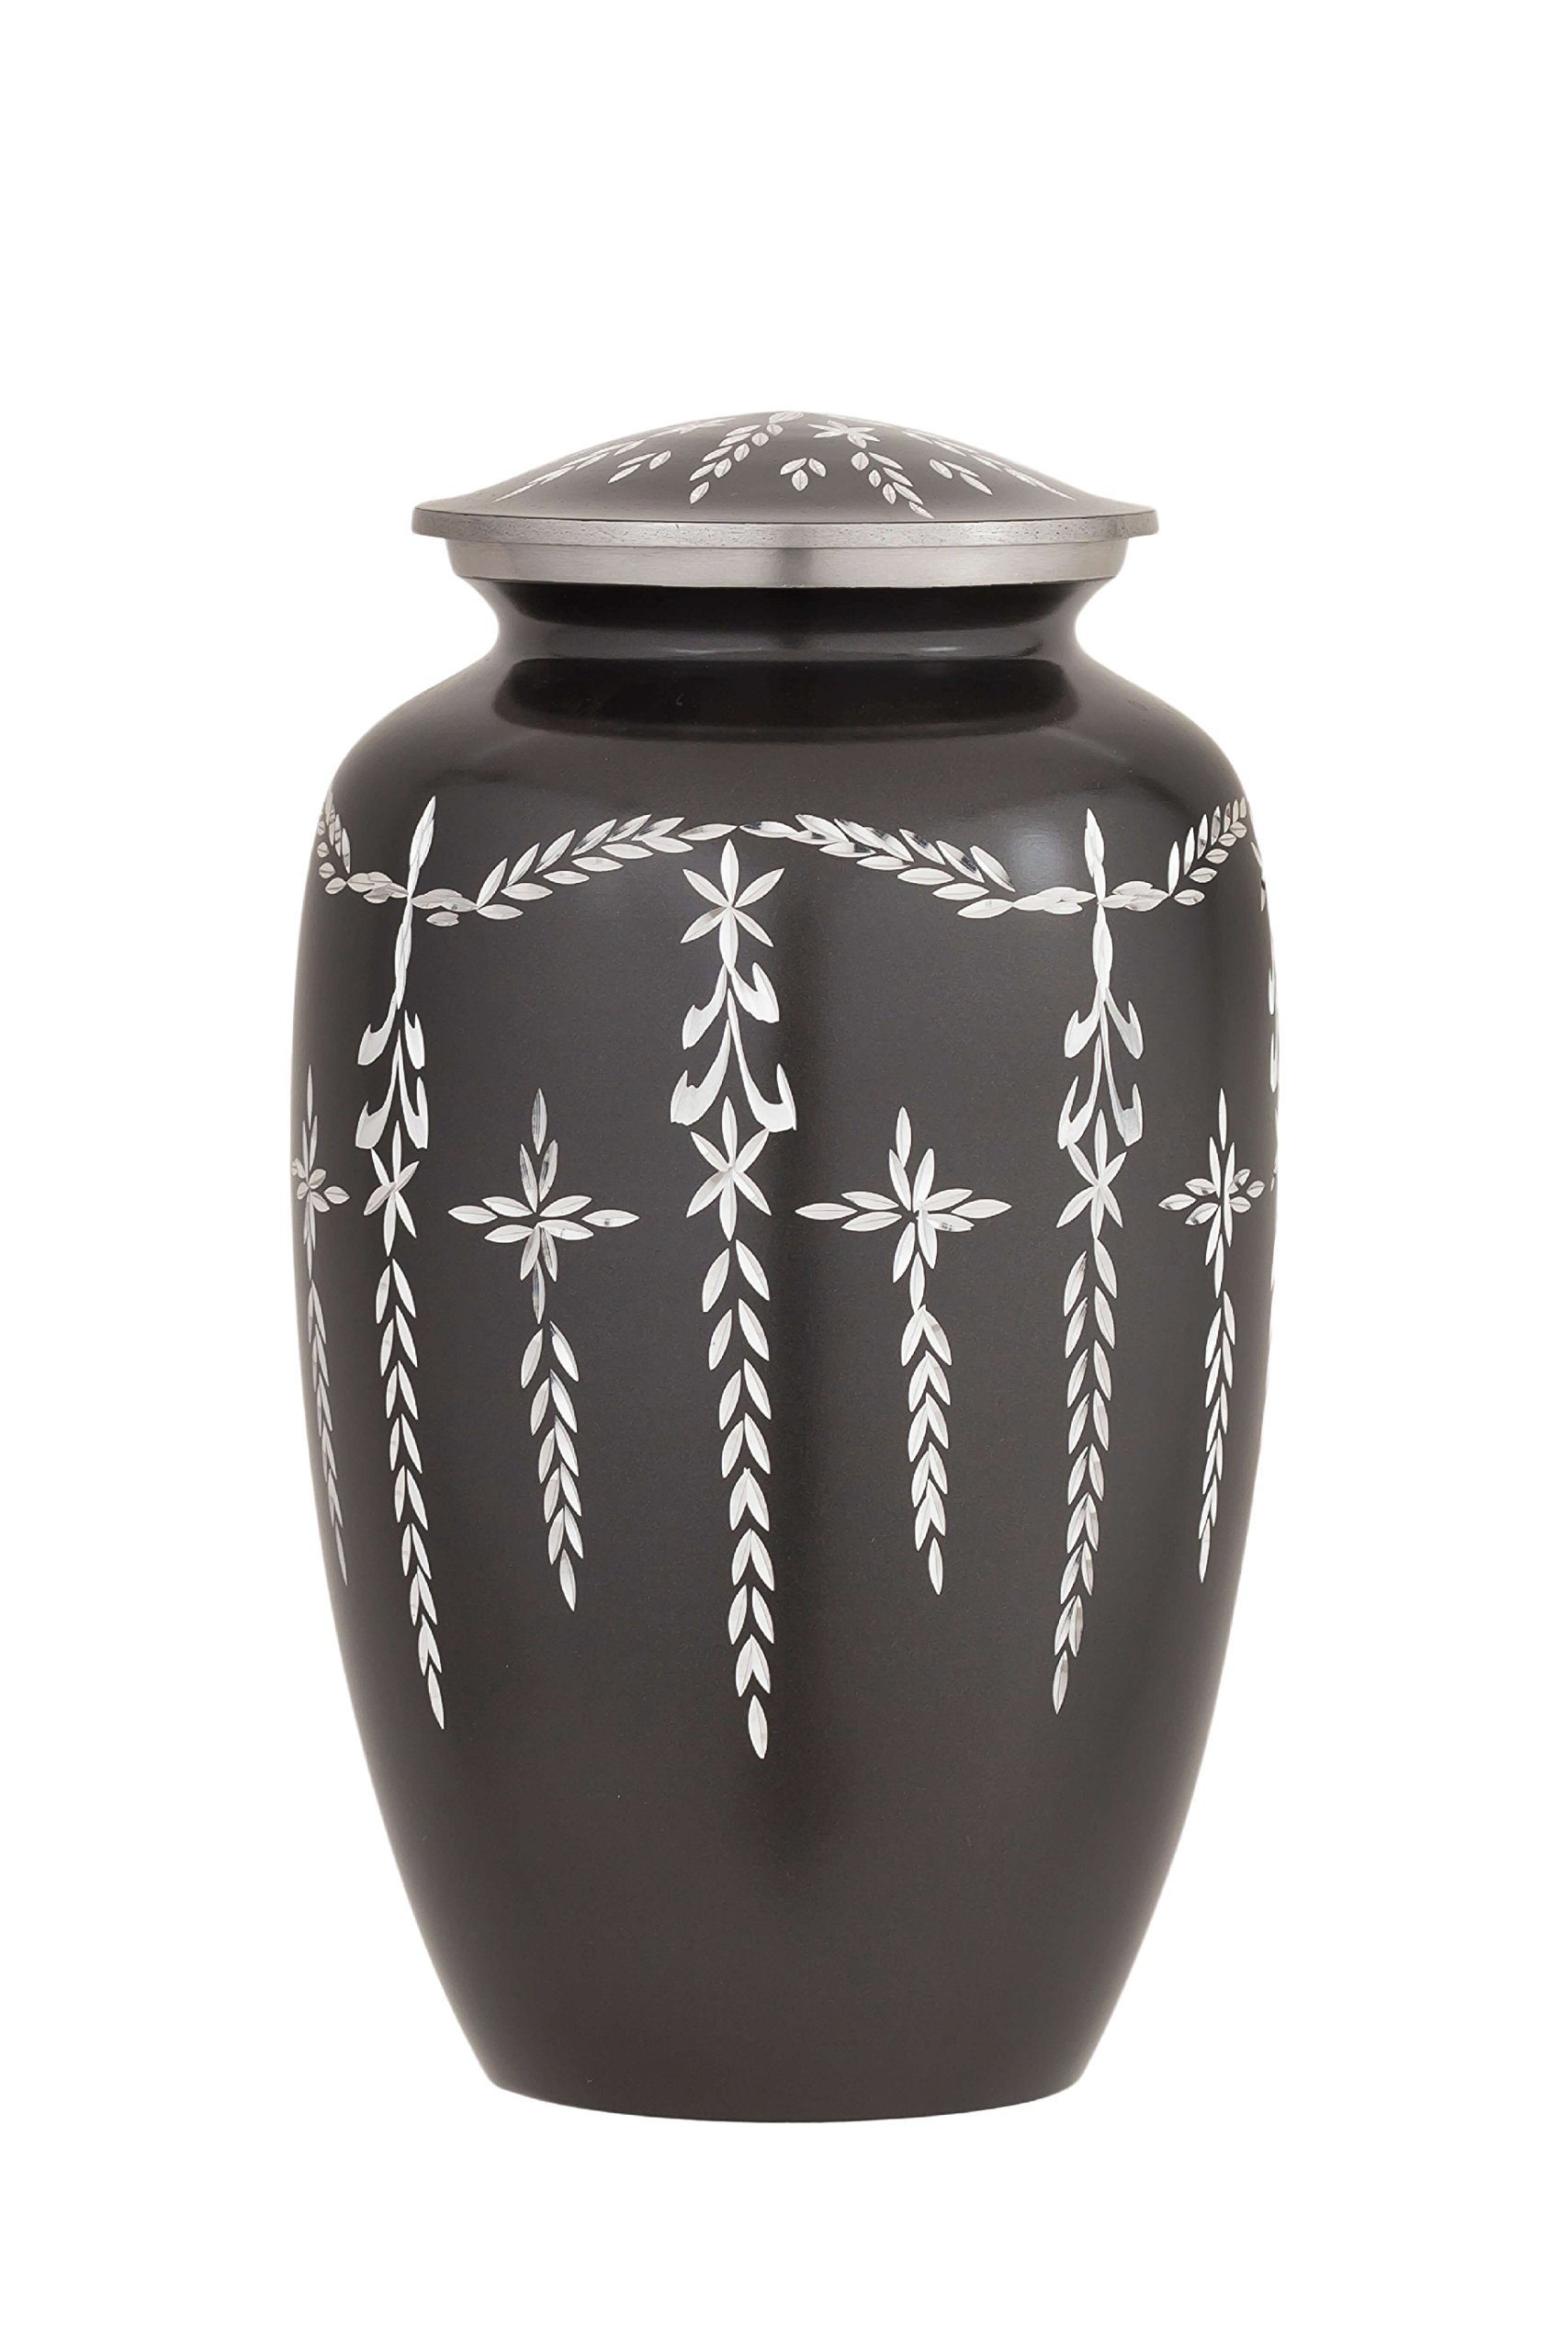 Enshrined Memorials Cremation Urn for Ashes - Nyx Series Affordable Solid Aluminum Metal Quality Handcrafted for Human Funeral Burial Large 10 inch, Slate Gray Diamond Cut